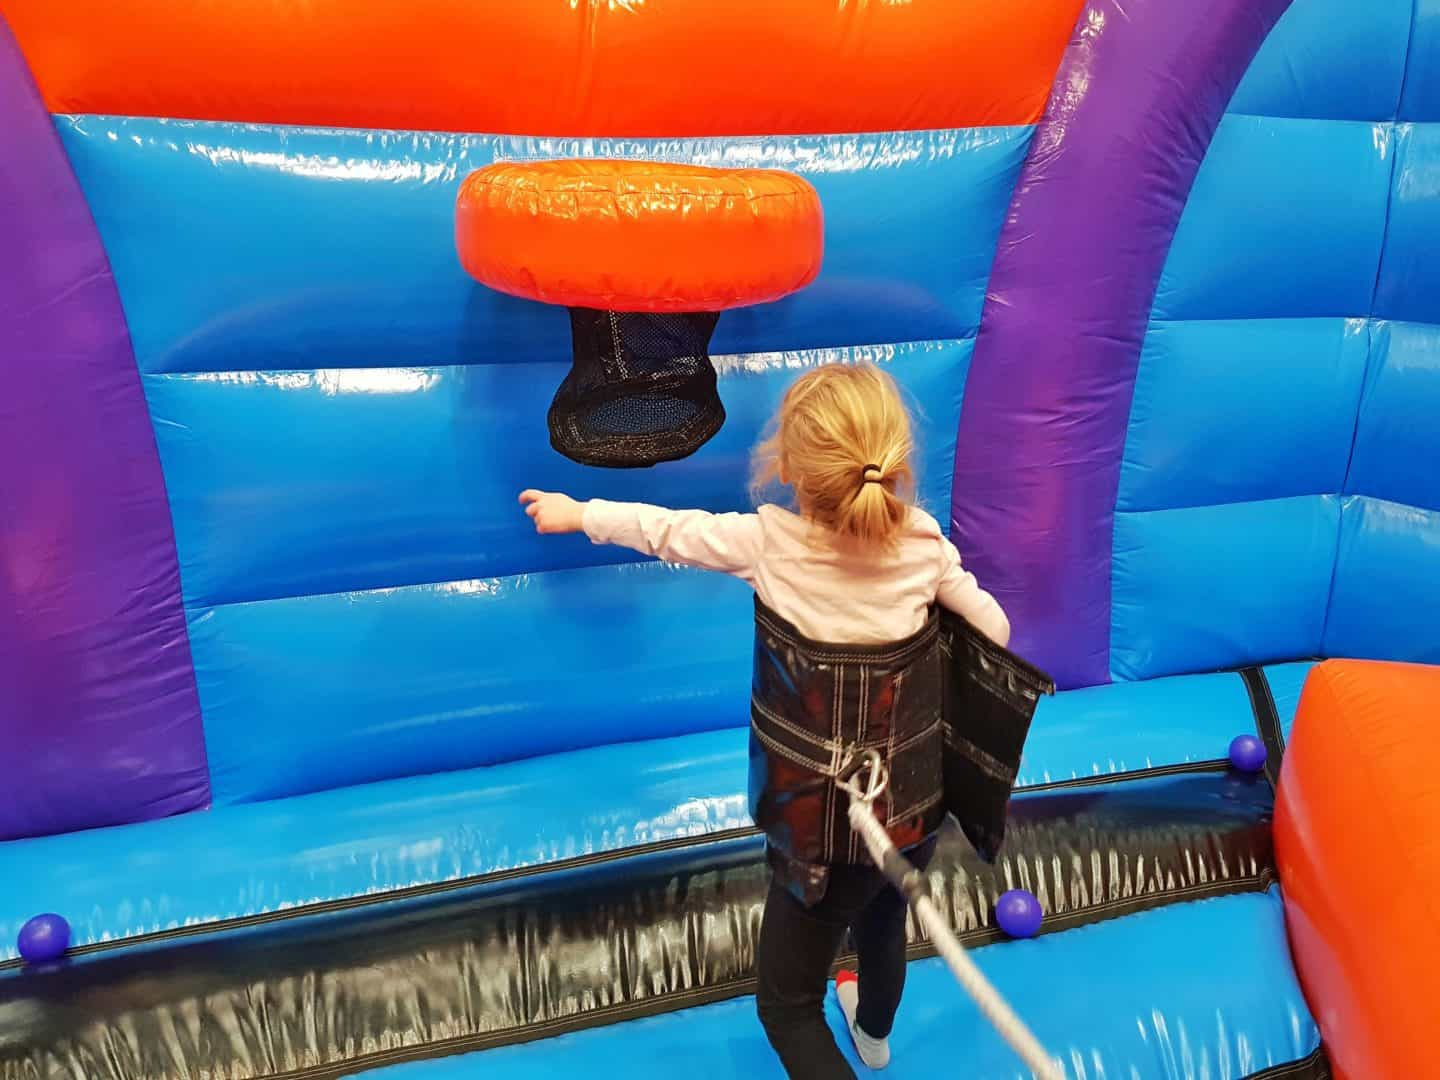 Inflata Nation Birmingham girl on bungee game